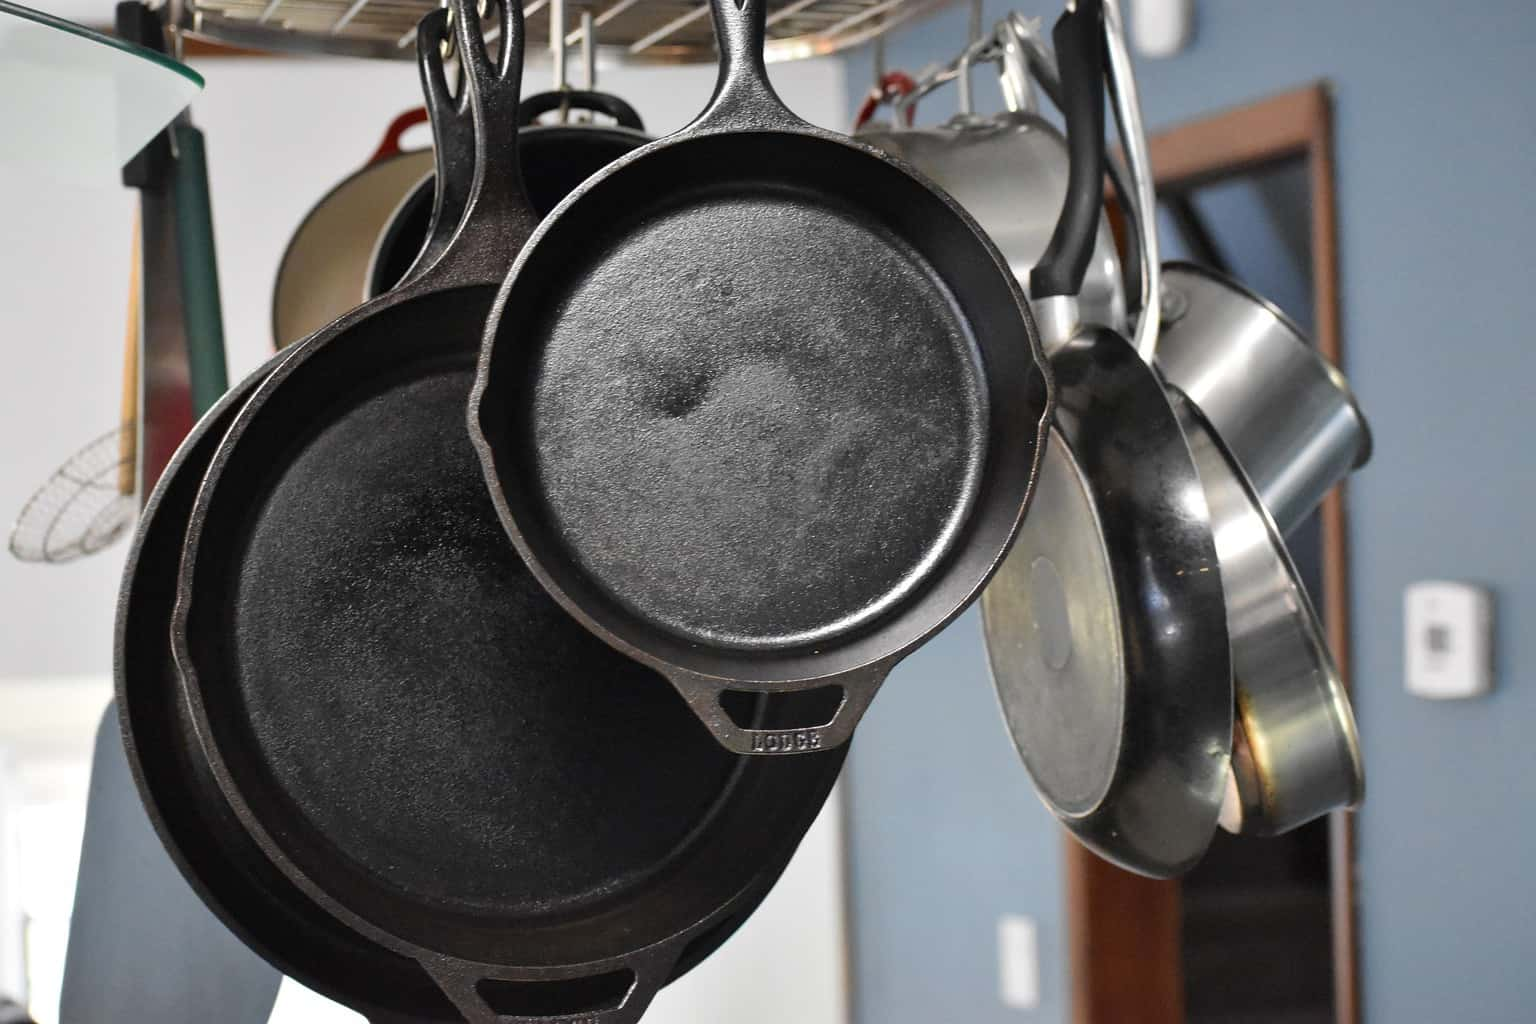 Cast iron pans and stainless steel pans hanging on a rail